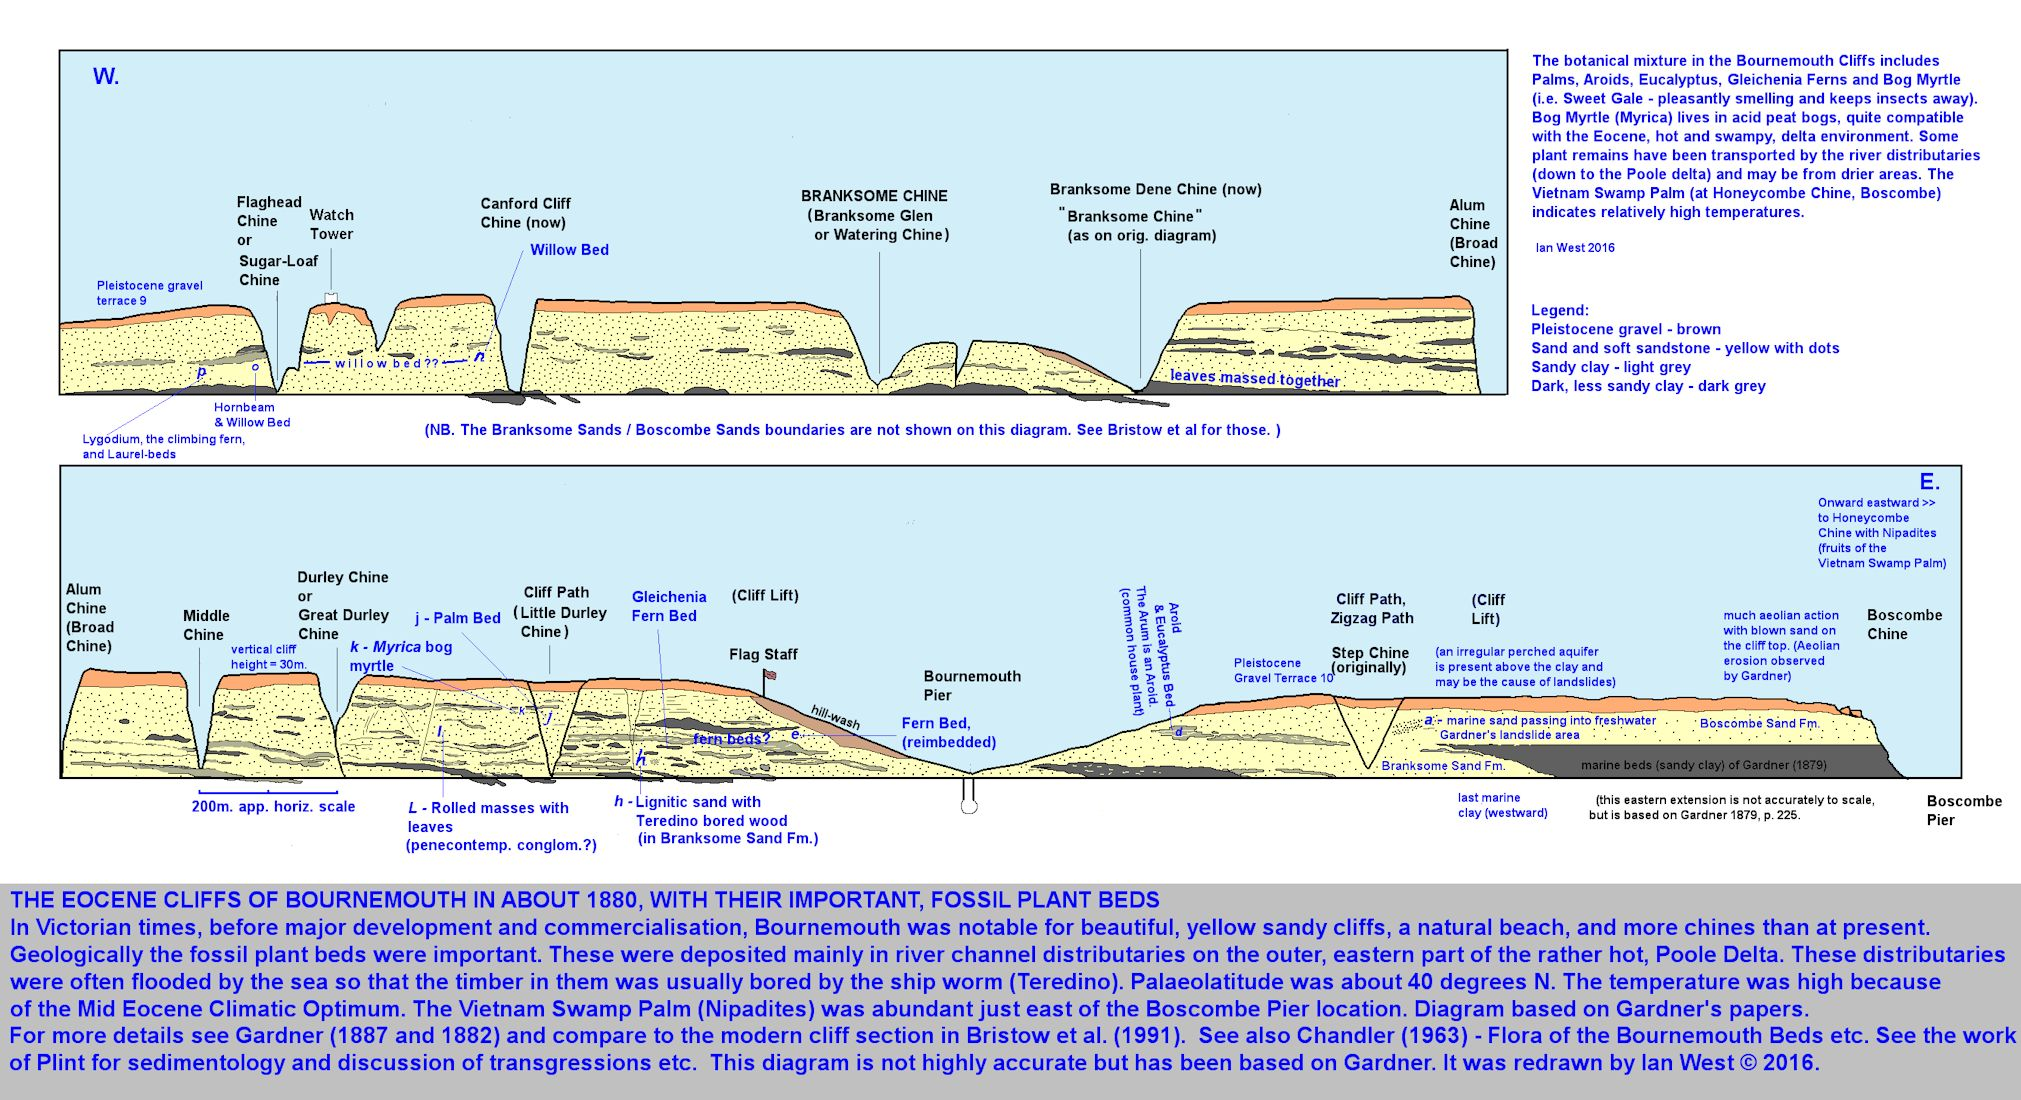 An east-west cliff diagram of the coast between Boscombe Pier and Canford Cliffs, Bournemouth, Dorset, showing simple geology of the Eocene, Branksome Sand Formation and Boscombe Sand Formation, and with data on fossil plant occurrences, largely after Gardner, 1879 and 1882